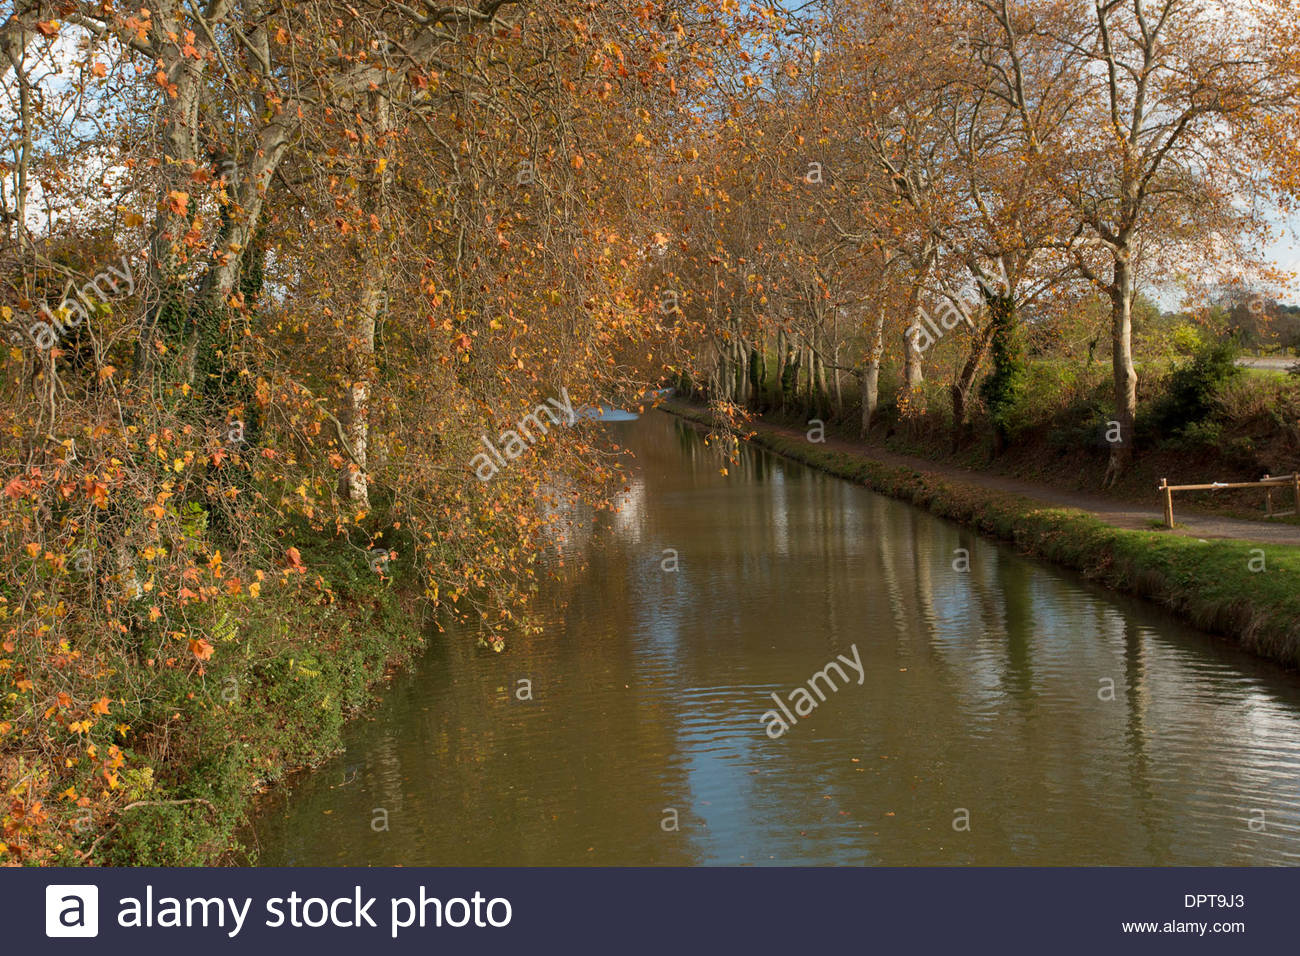 The Canal du midi fringed with plane trees, in autumn, near Carcassonne, south-west, France - Stock Image